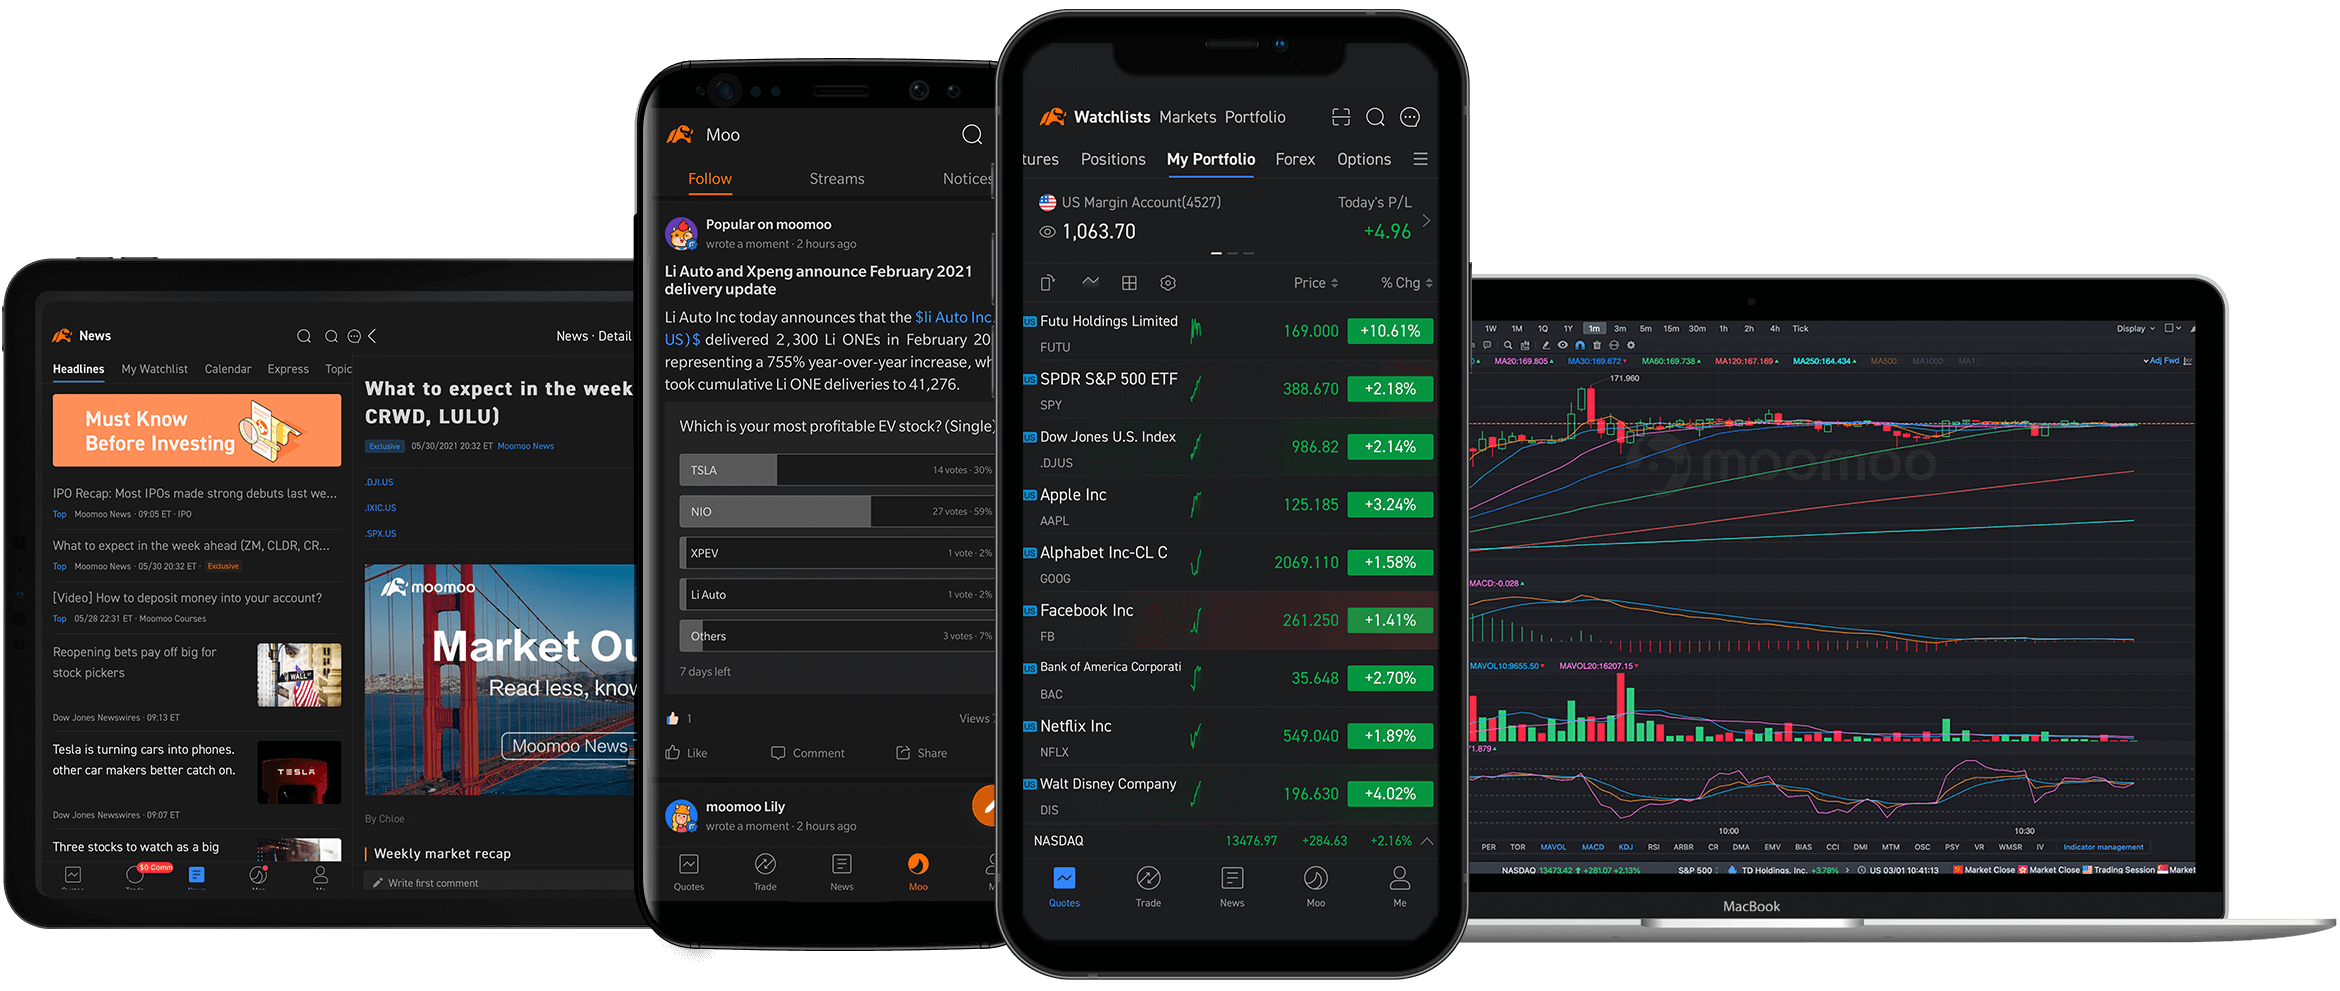 Access to Comprehensive and Powerful Trading Tools